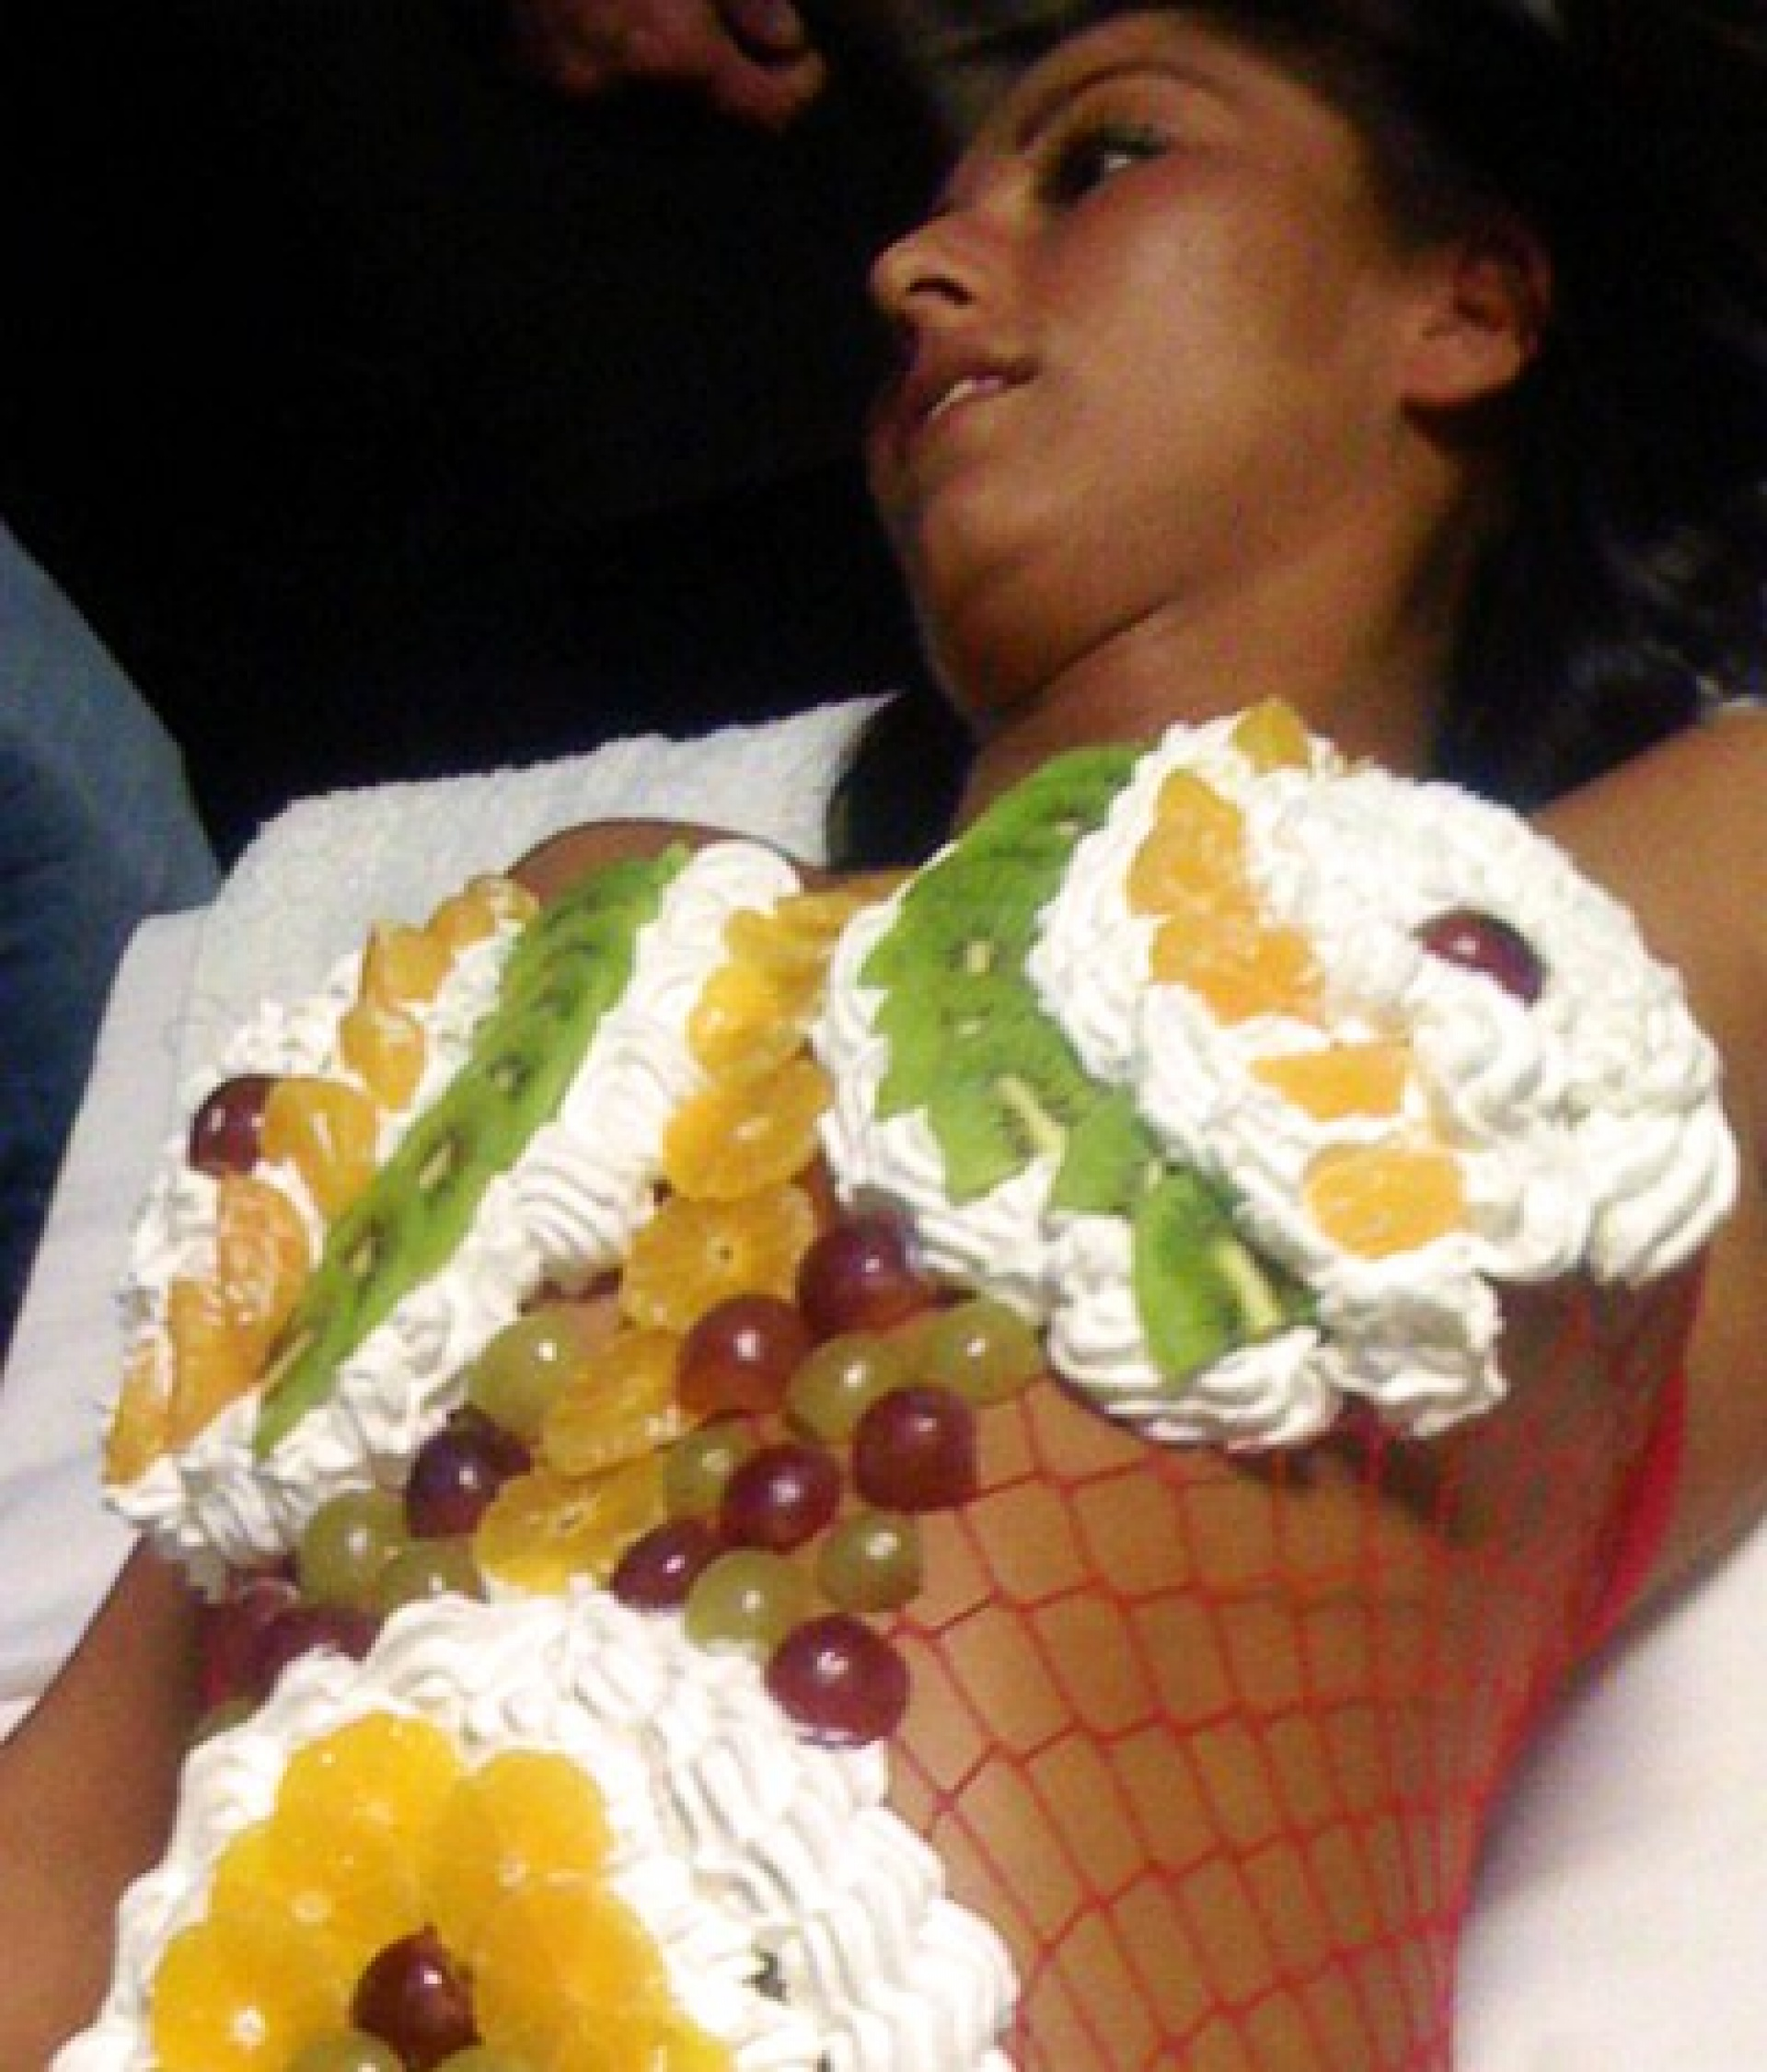 girl covered in fruit salad